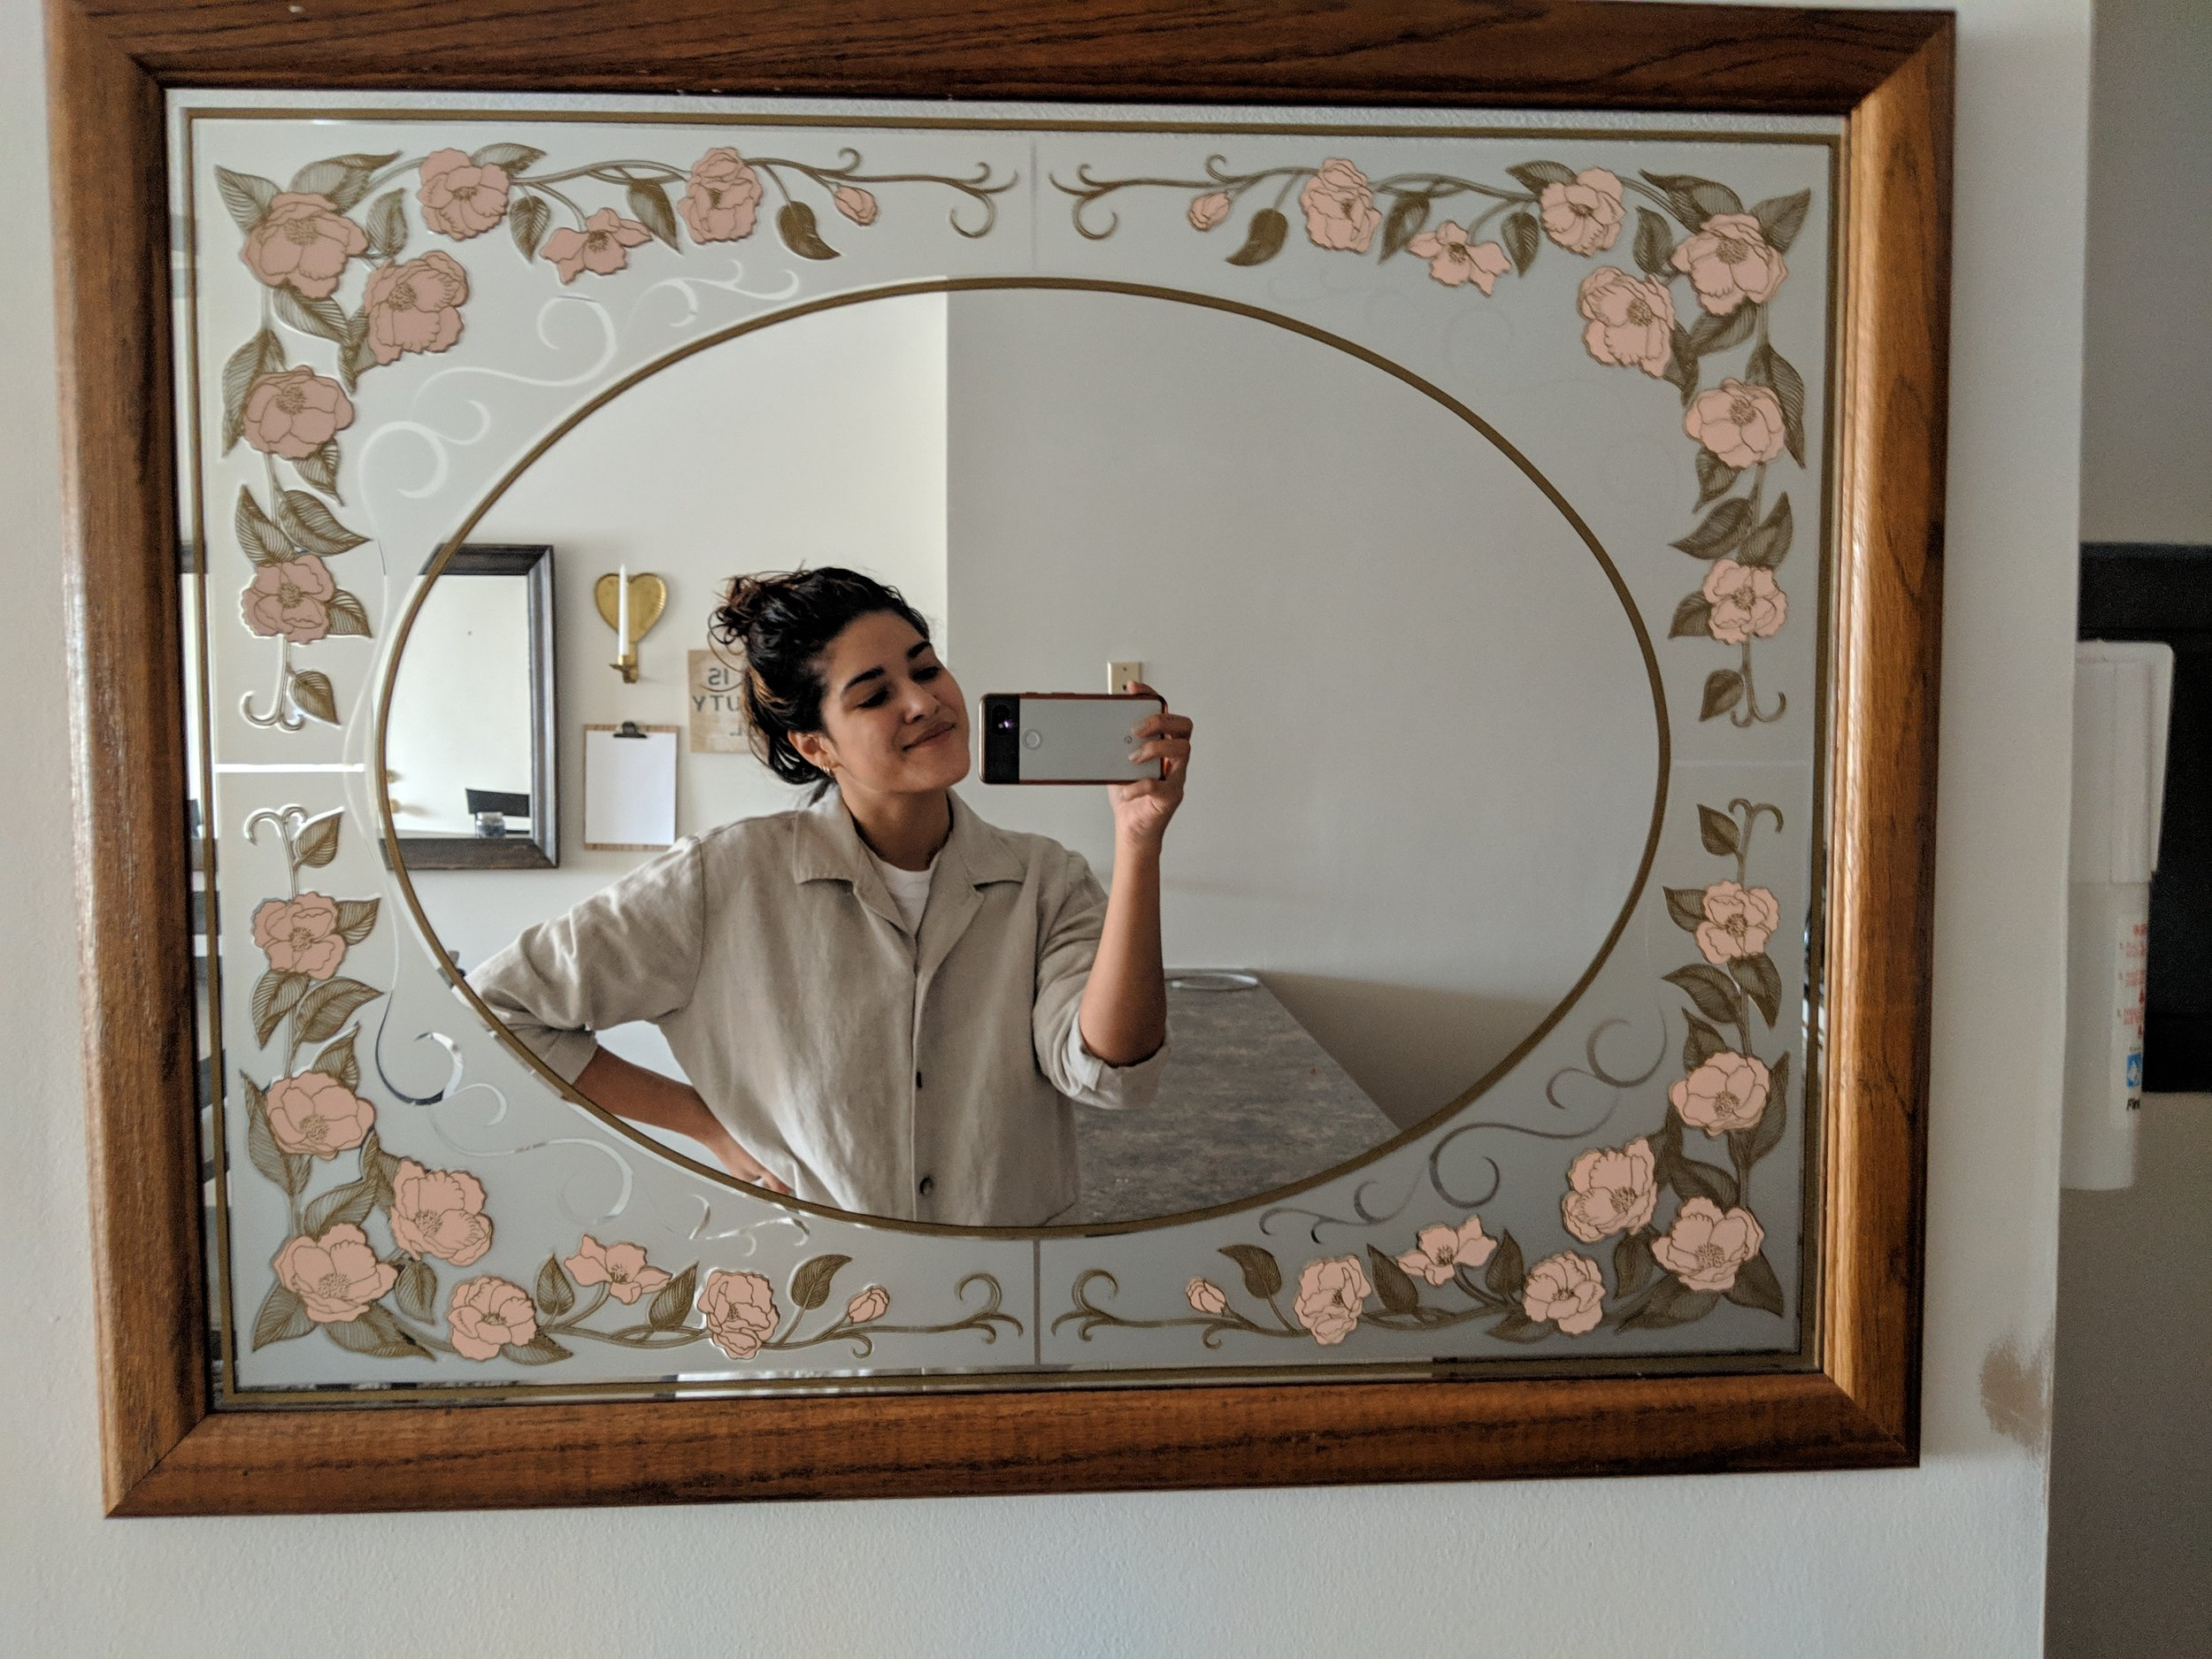 4. Floral mirror - Craigslist, $20: It was in nearly perfect condition. There were a few splashes of yellow paint on the frame, but I had no trouble scraping them off.